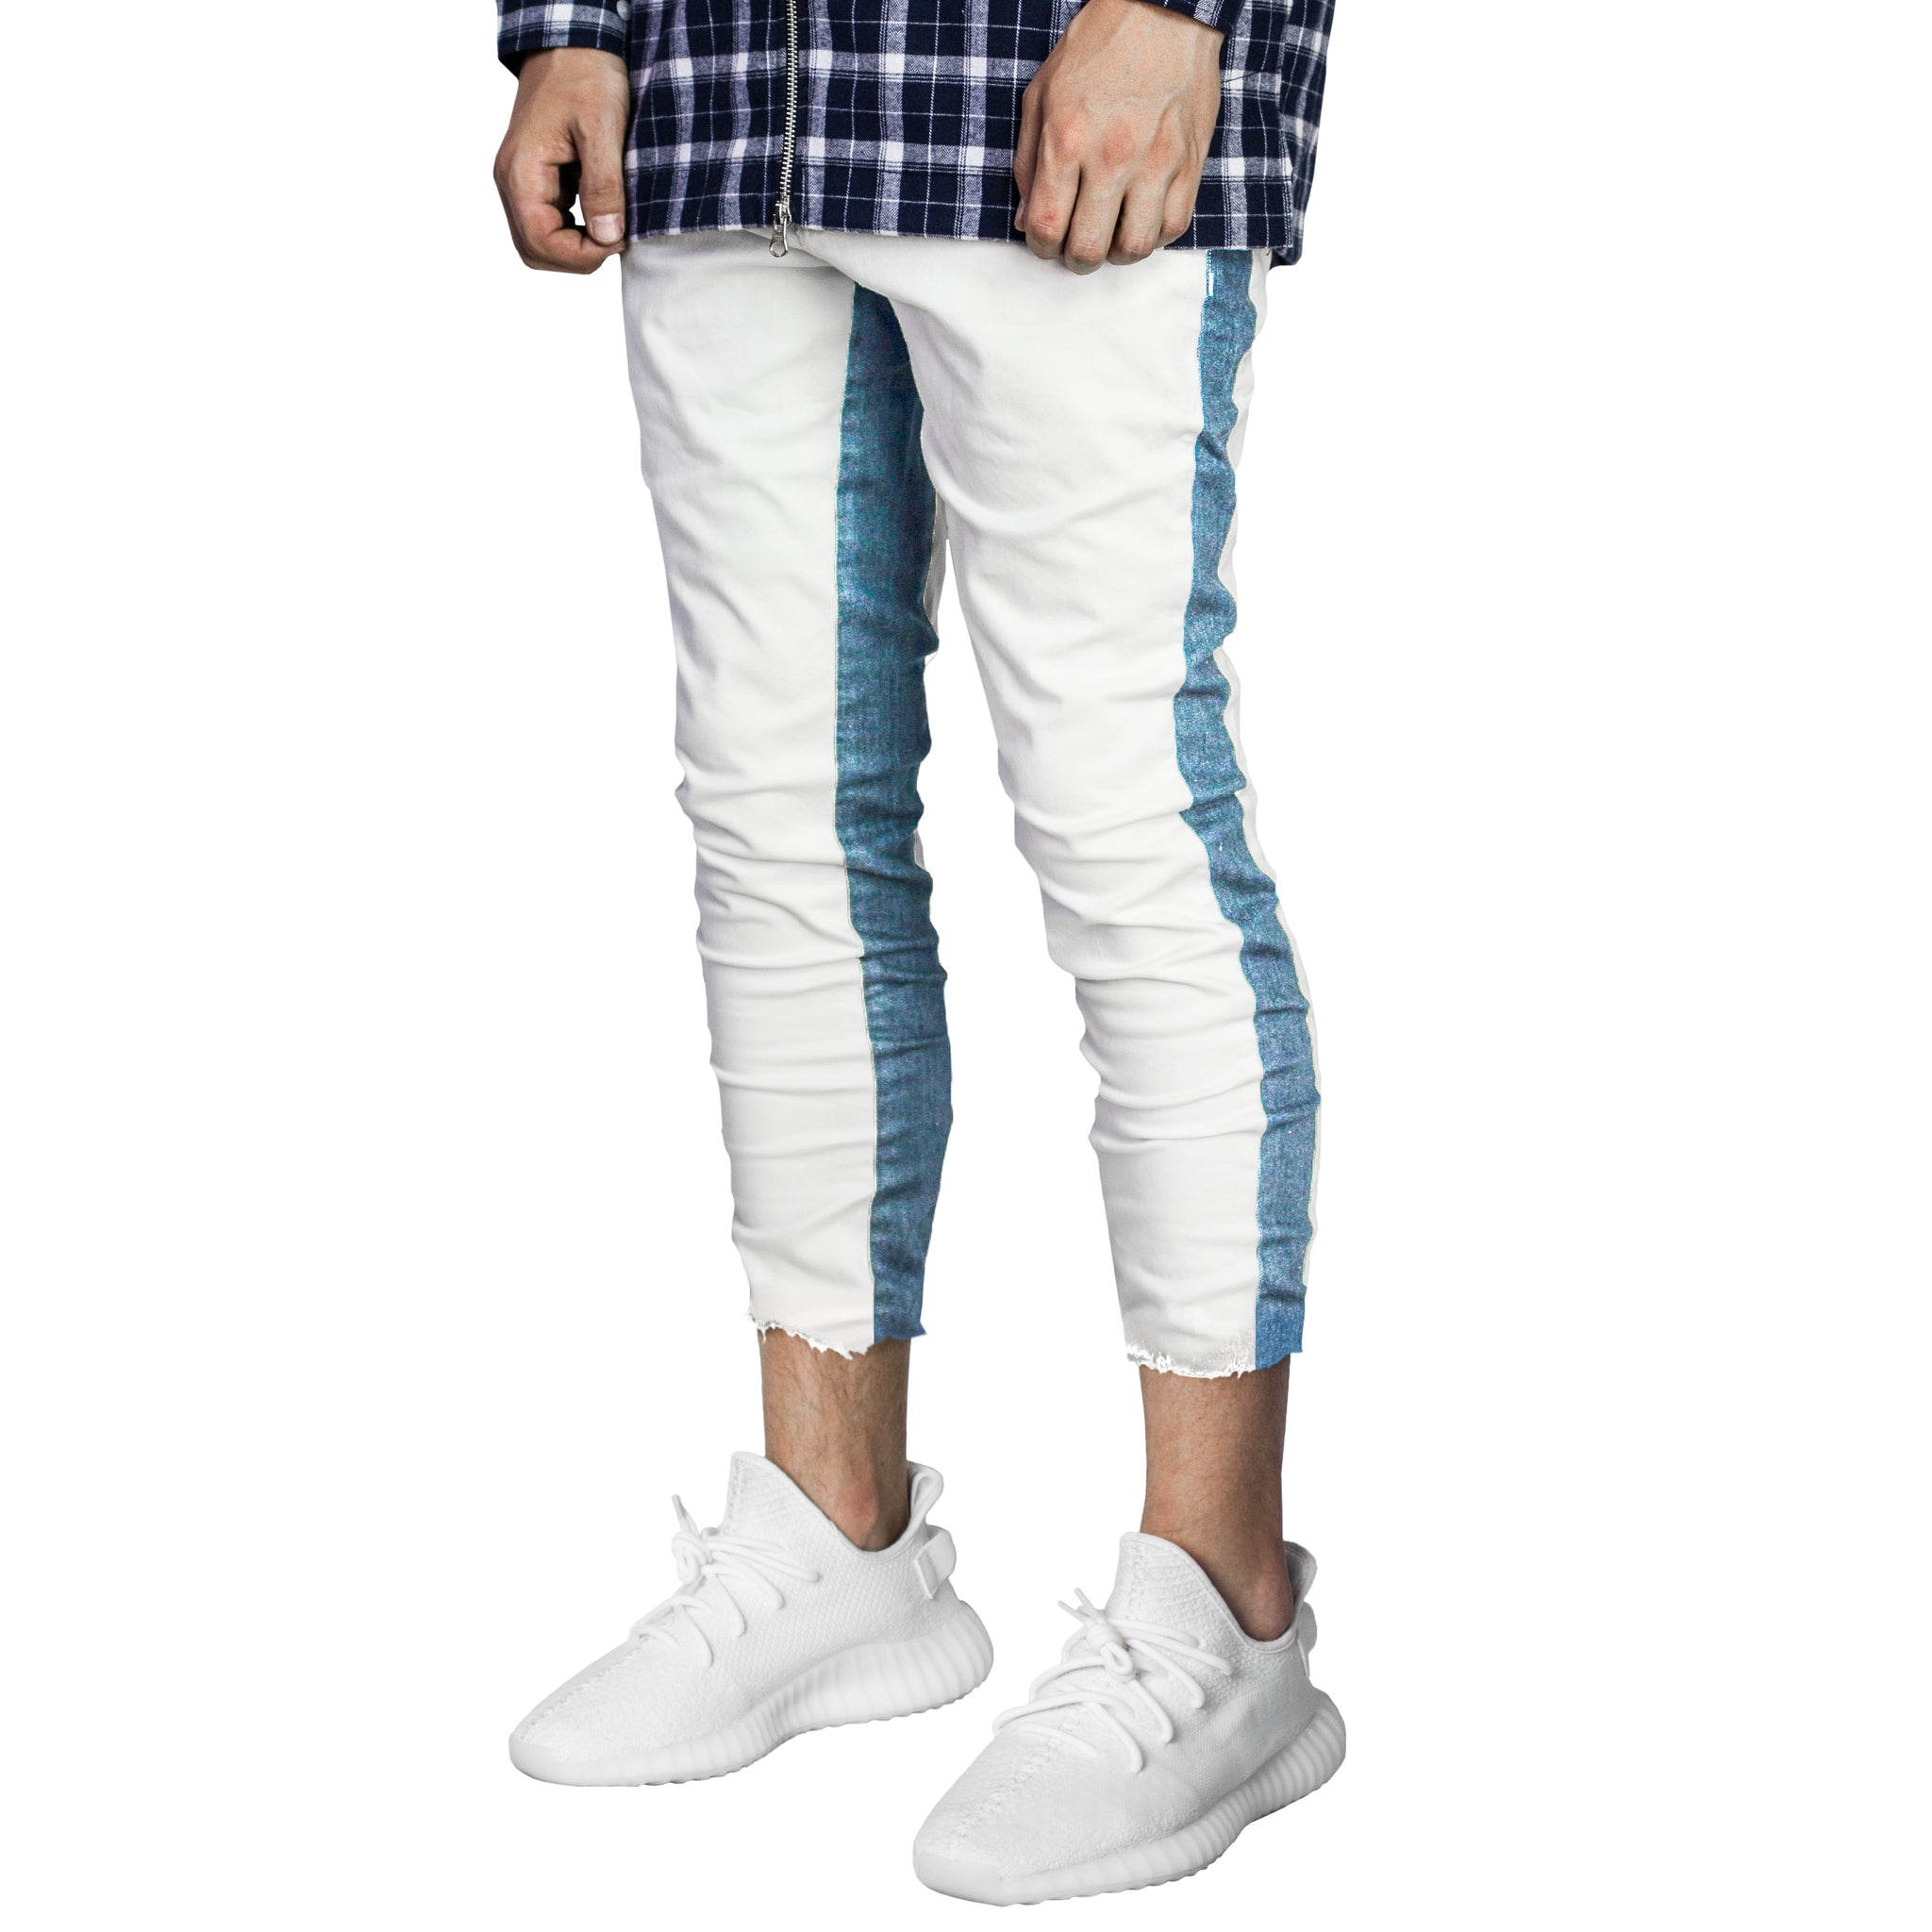 Cropped Track Jeans : White/Blue